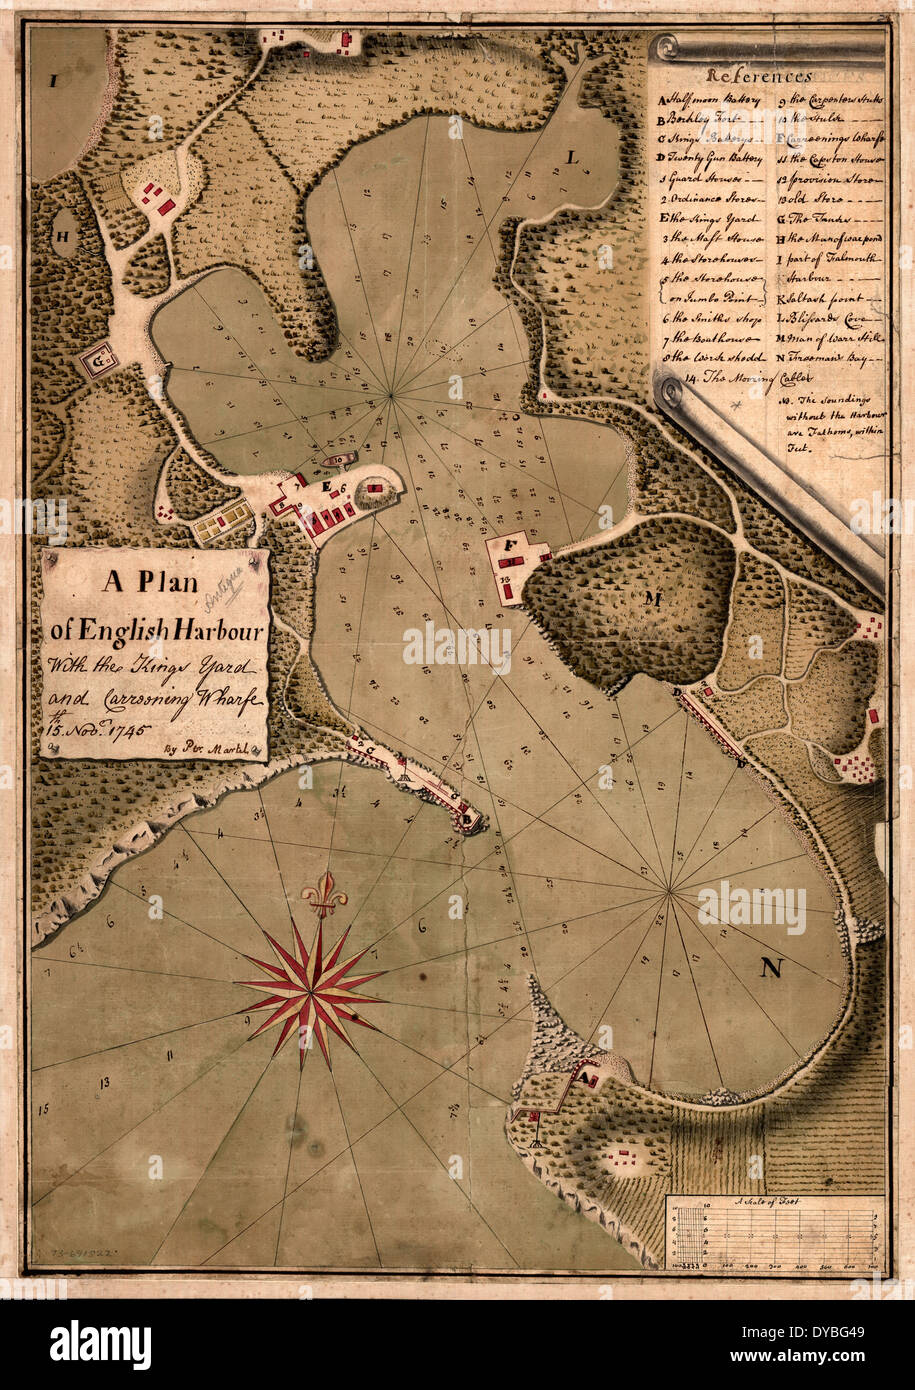 A plan of English Harbour; with the King's yard and carreening wharfe, 15th. Nov. 1745. - Stock Image